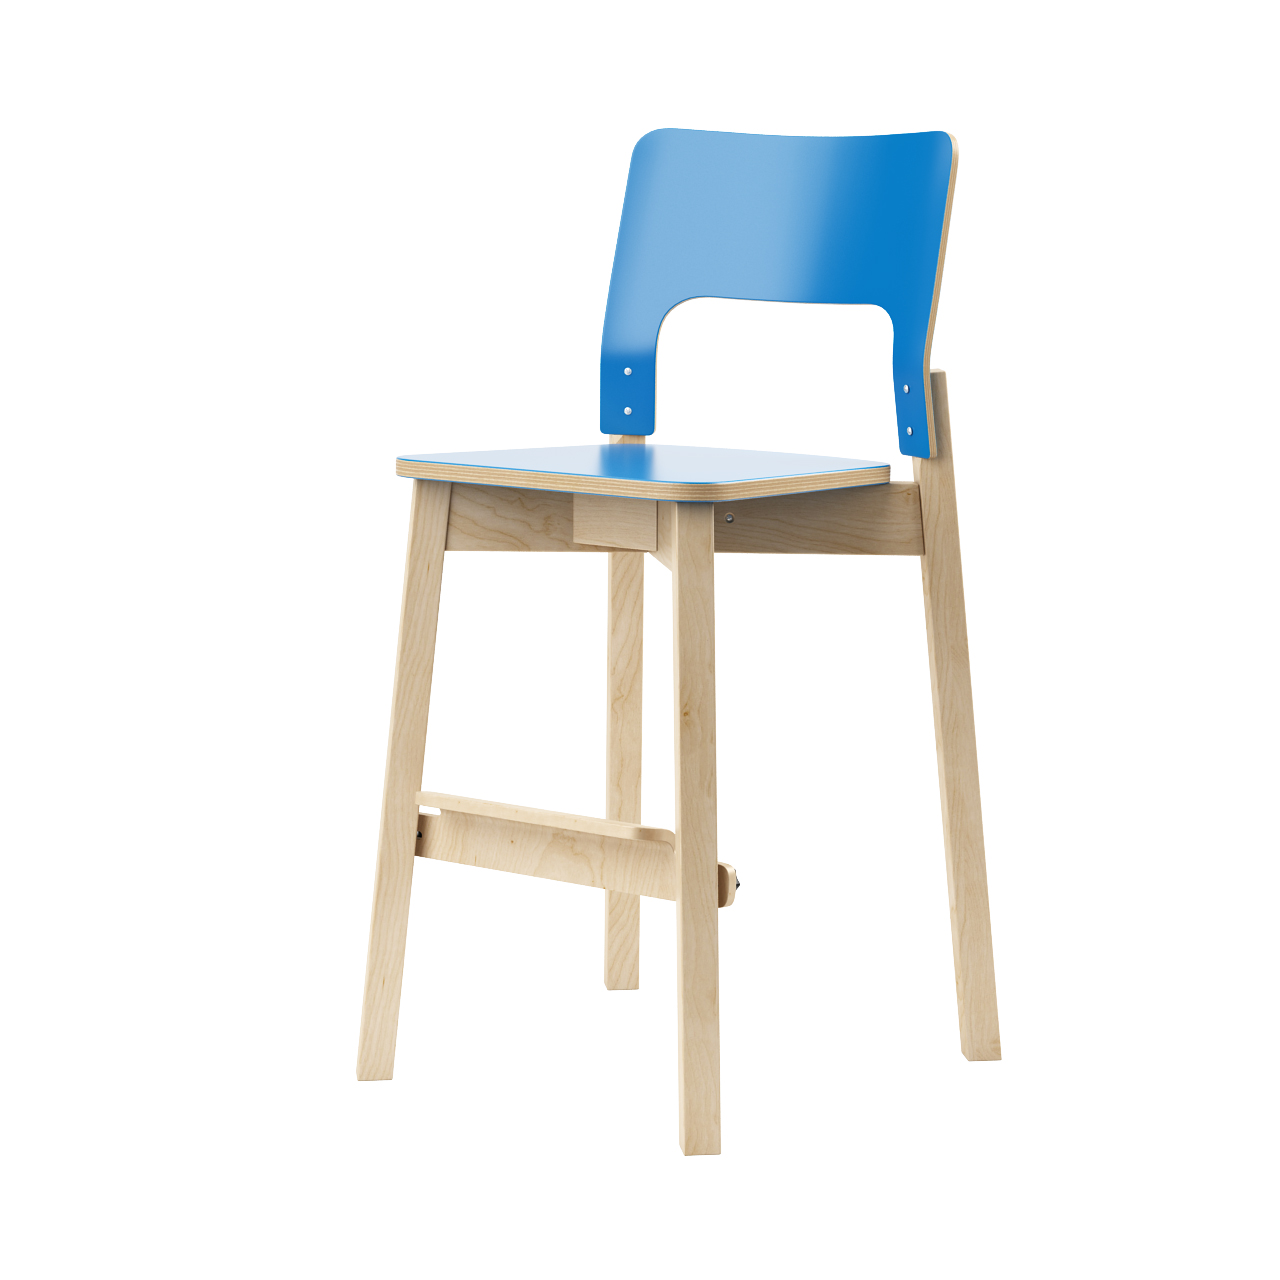 S293H Chair by Balzar Beskow